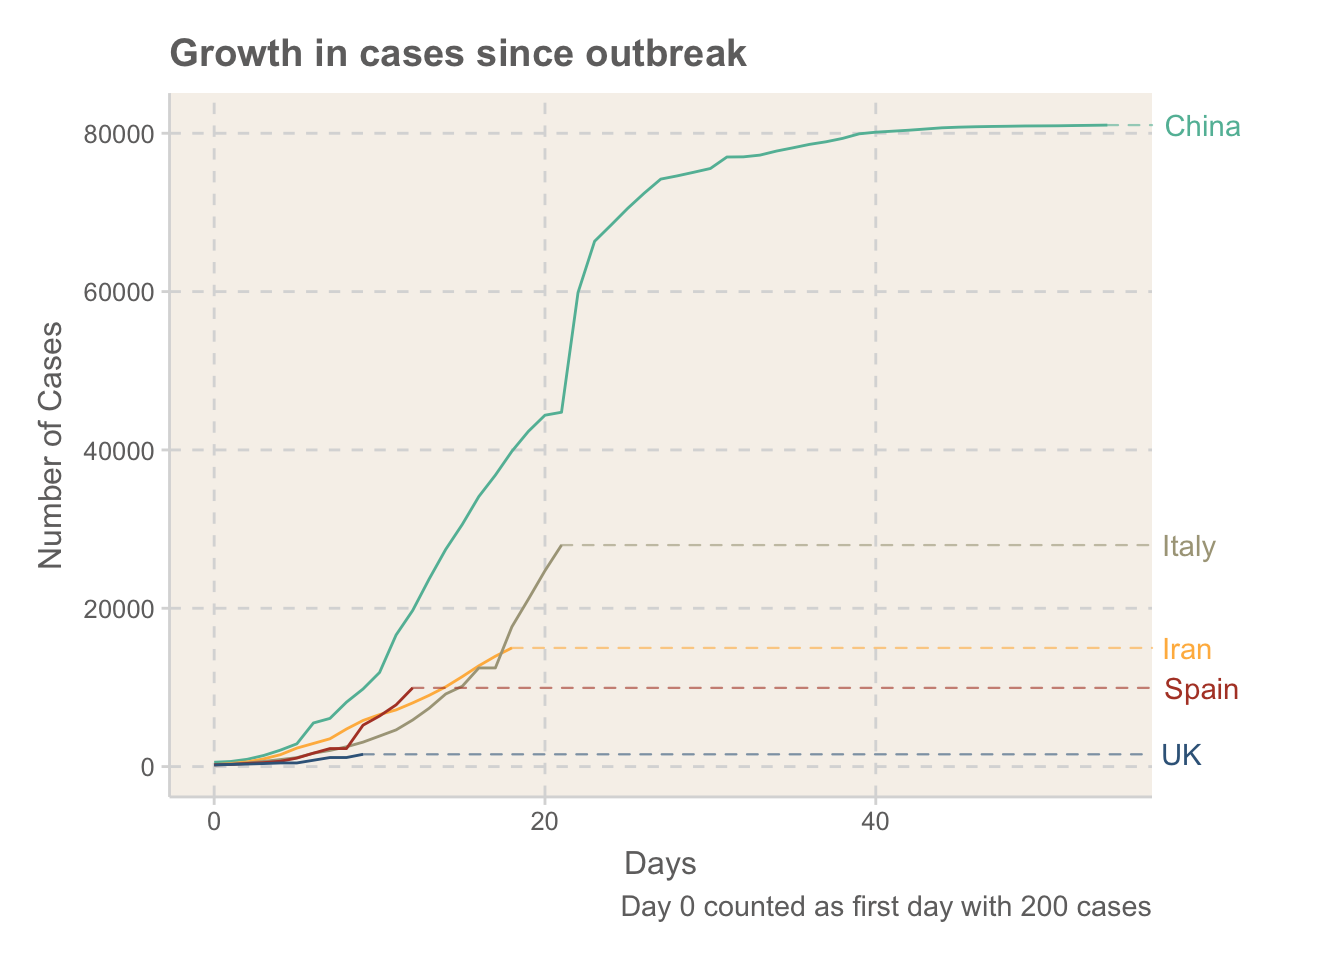 Rates of growth in cases of COVID-19, measured in days after the 200 case was recorded